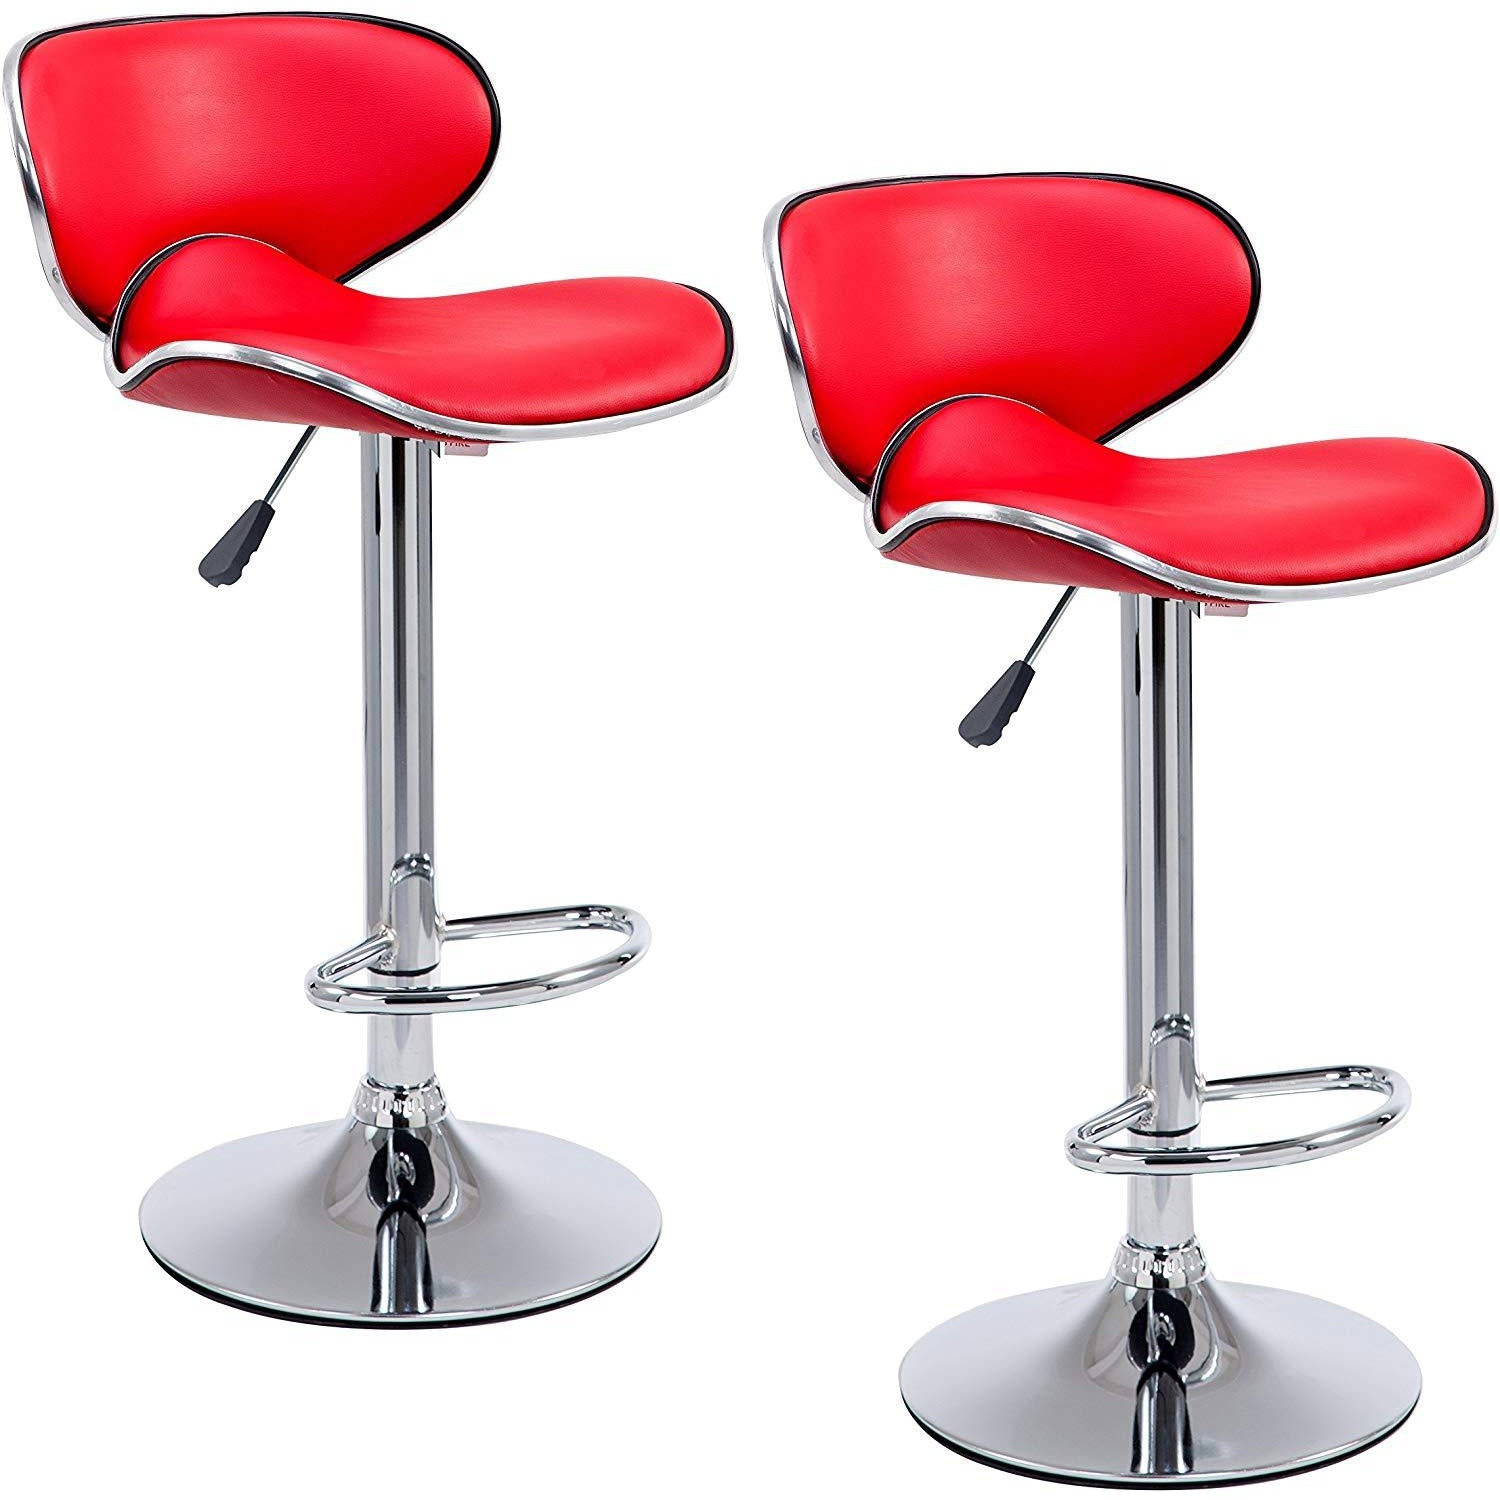 Cherry Tree Furniture SET OF 2 X Faux Leather Chrome Base Height Adjustable Swivel Bar Stools Kitchen Stools in Red MB-201